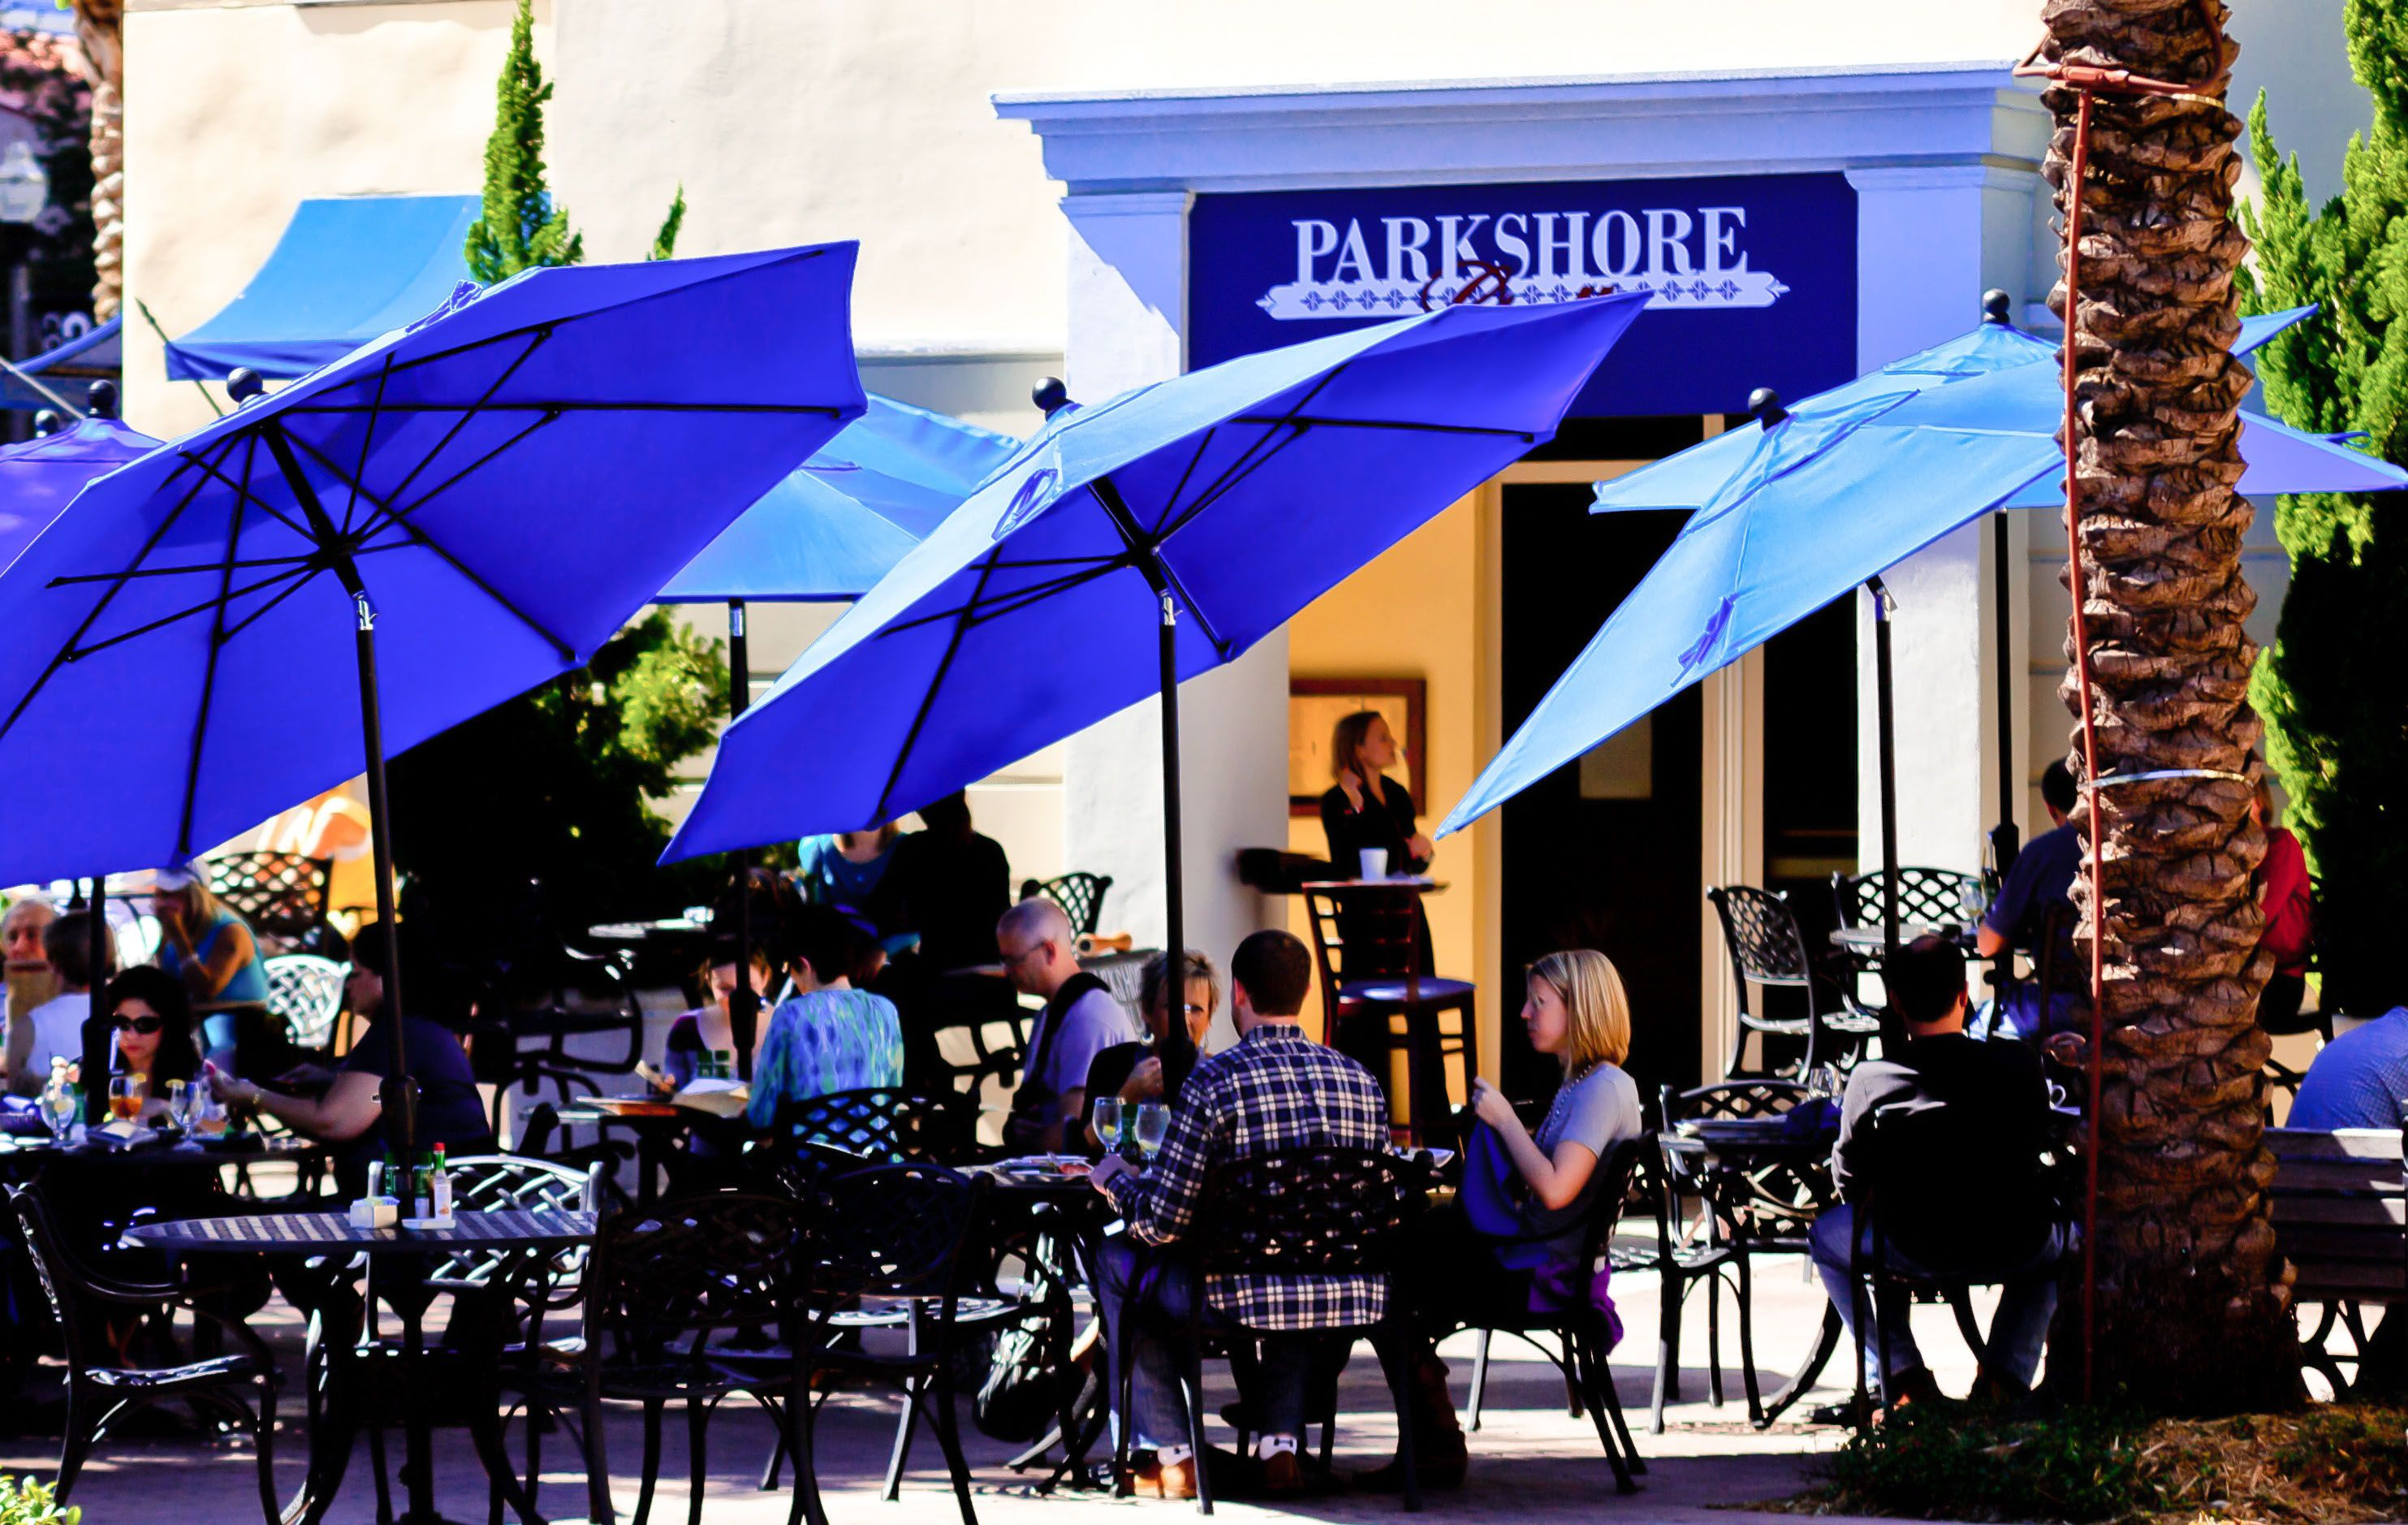 Parks Grill Saint Petersburg Fl Contemporary American Cuisine Fine Food Wine